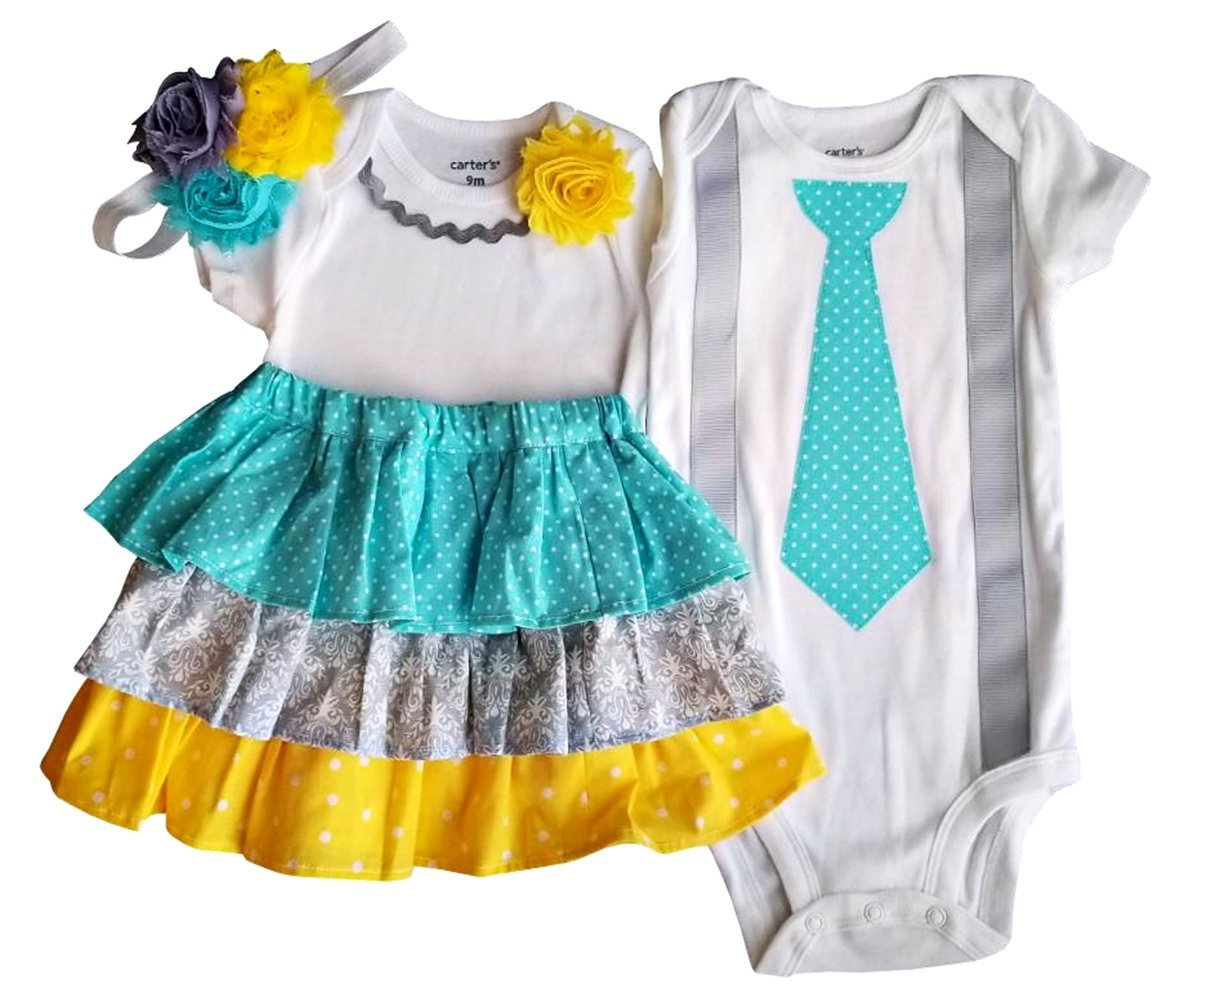 Perfect Pairz Boy Girl Twin Outfits Grace and Grayson USA Made Outfit